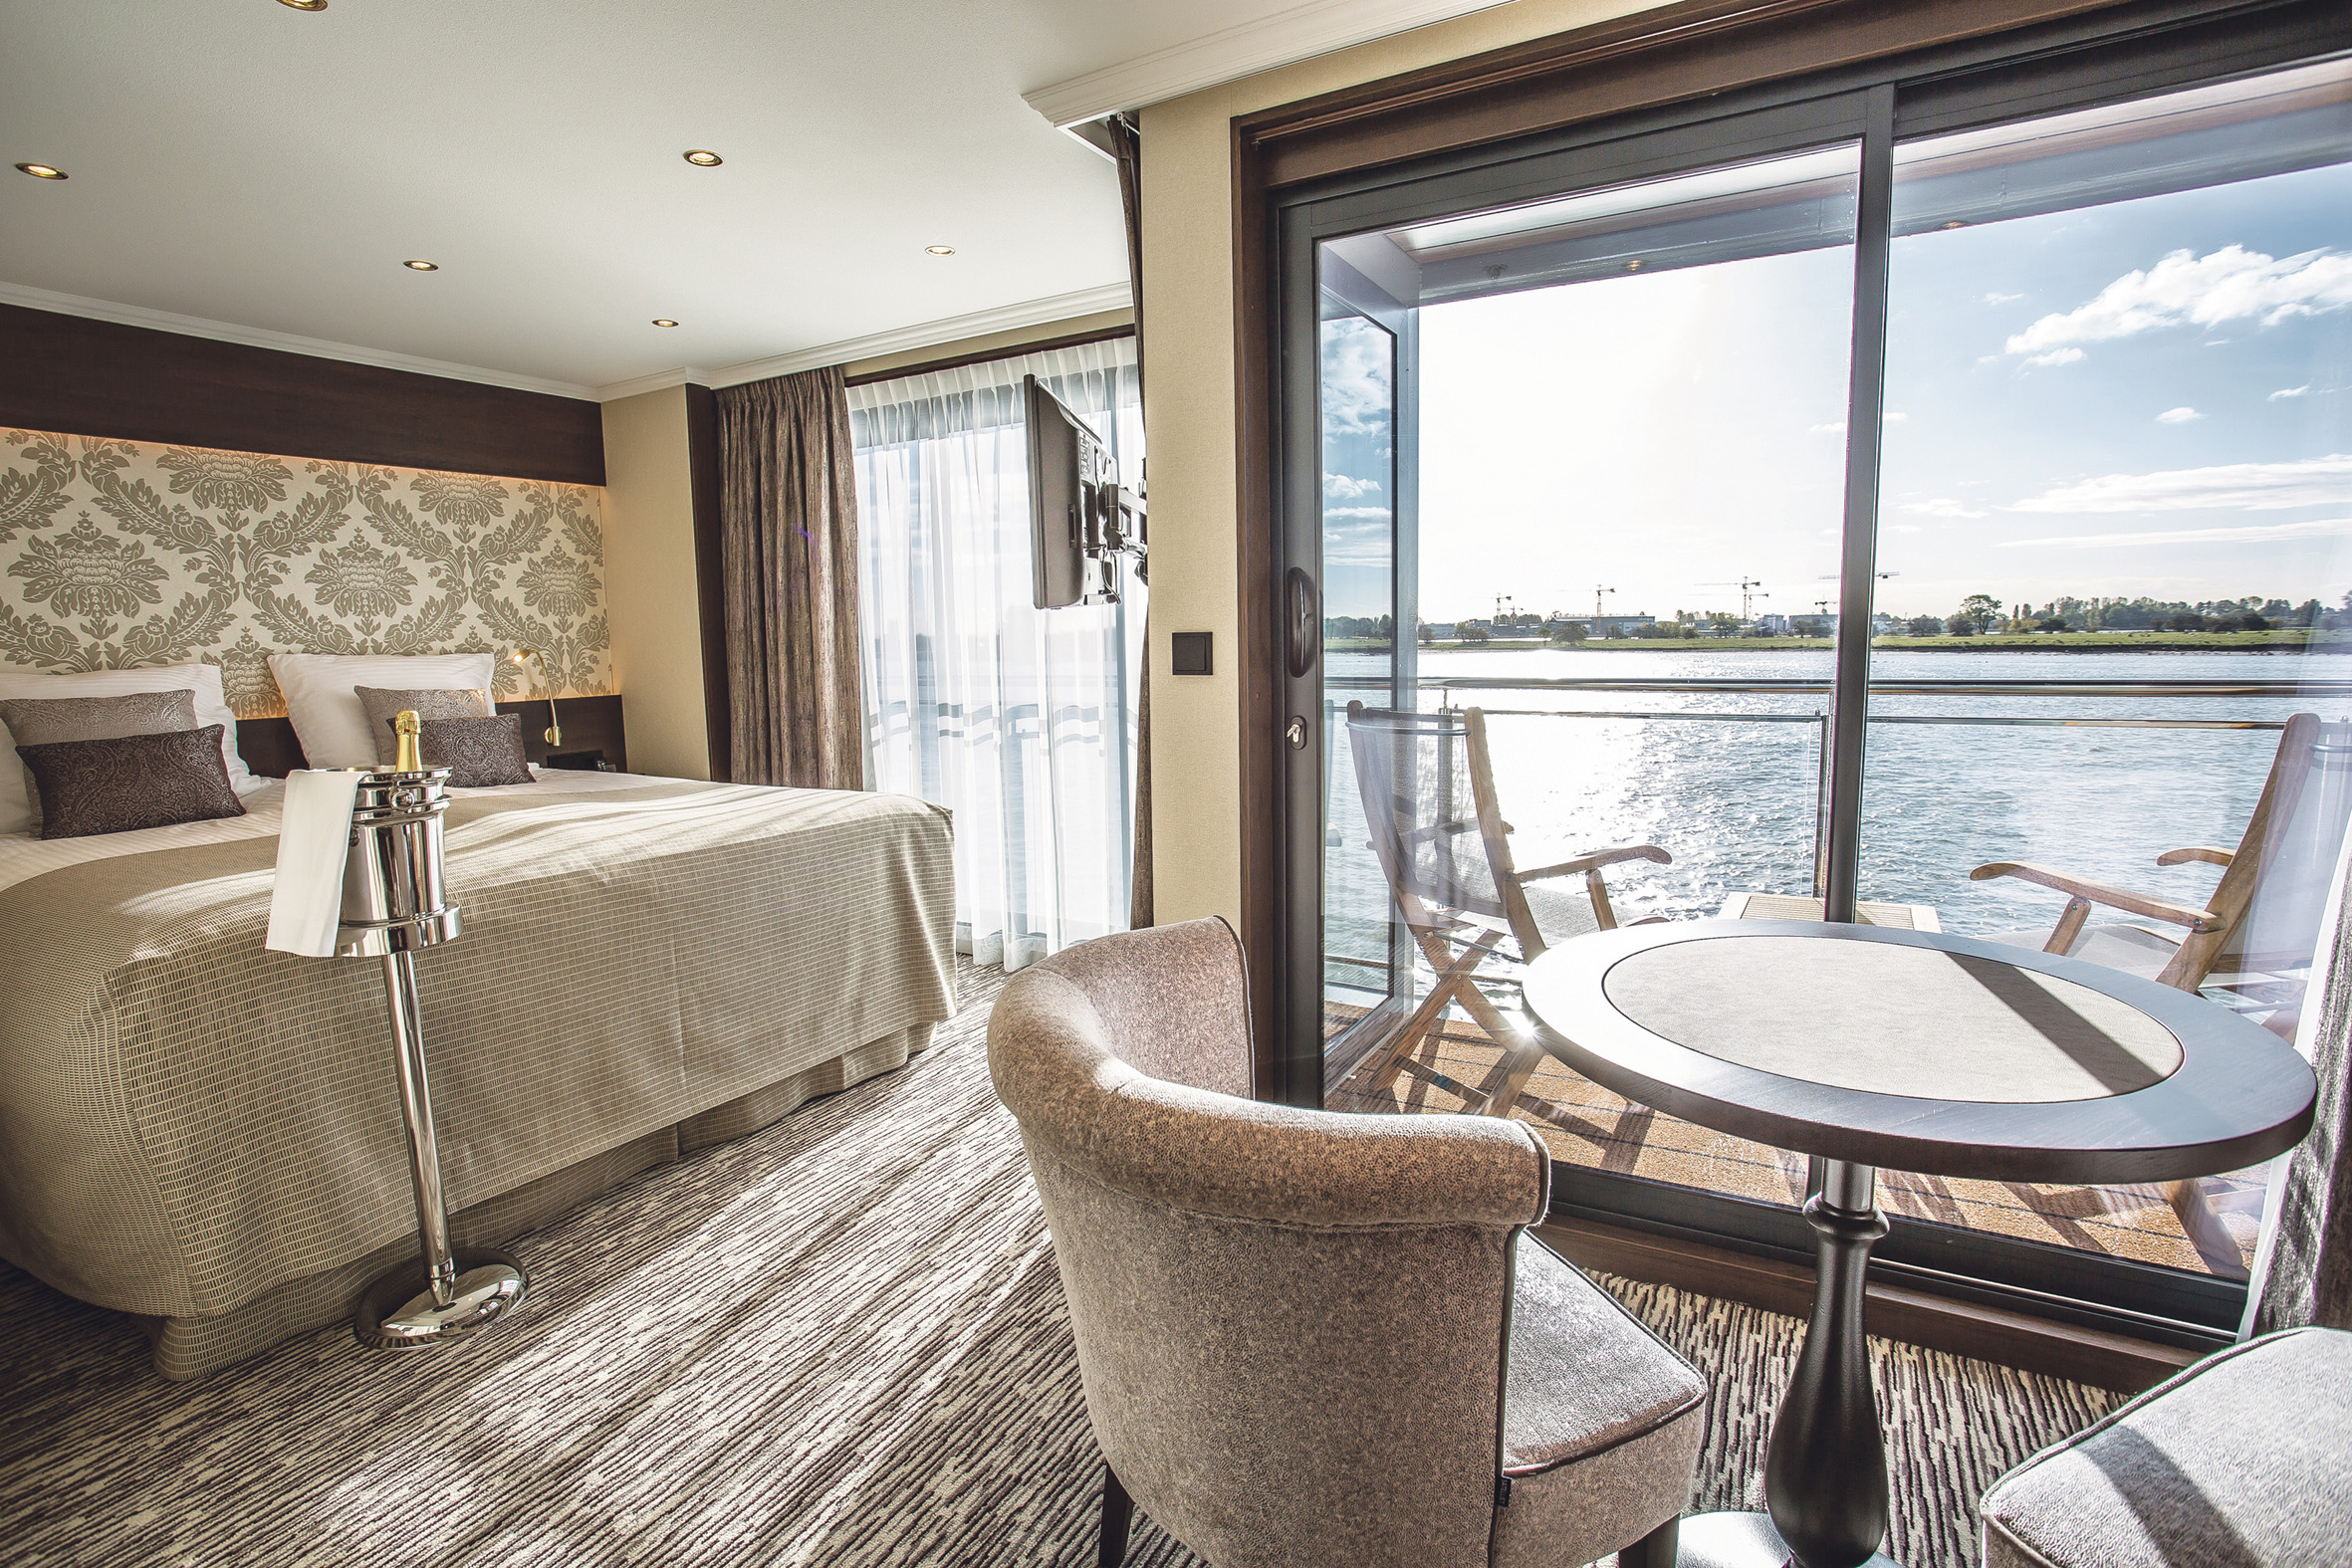 Deluxe suite with outside balcony Thomas Hardy